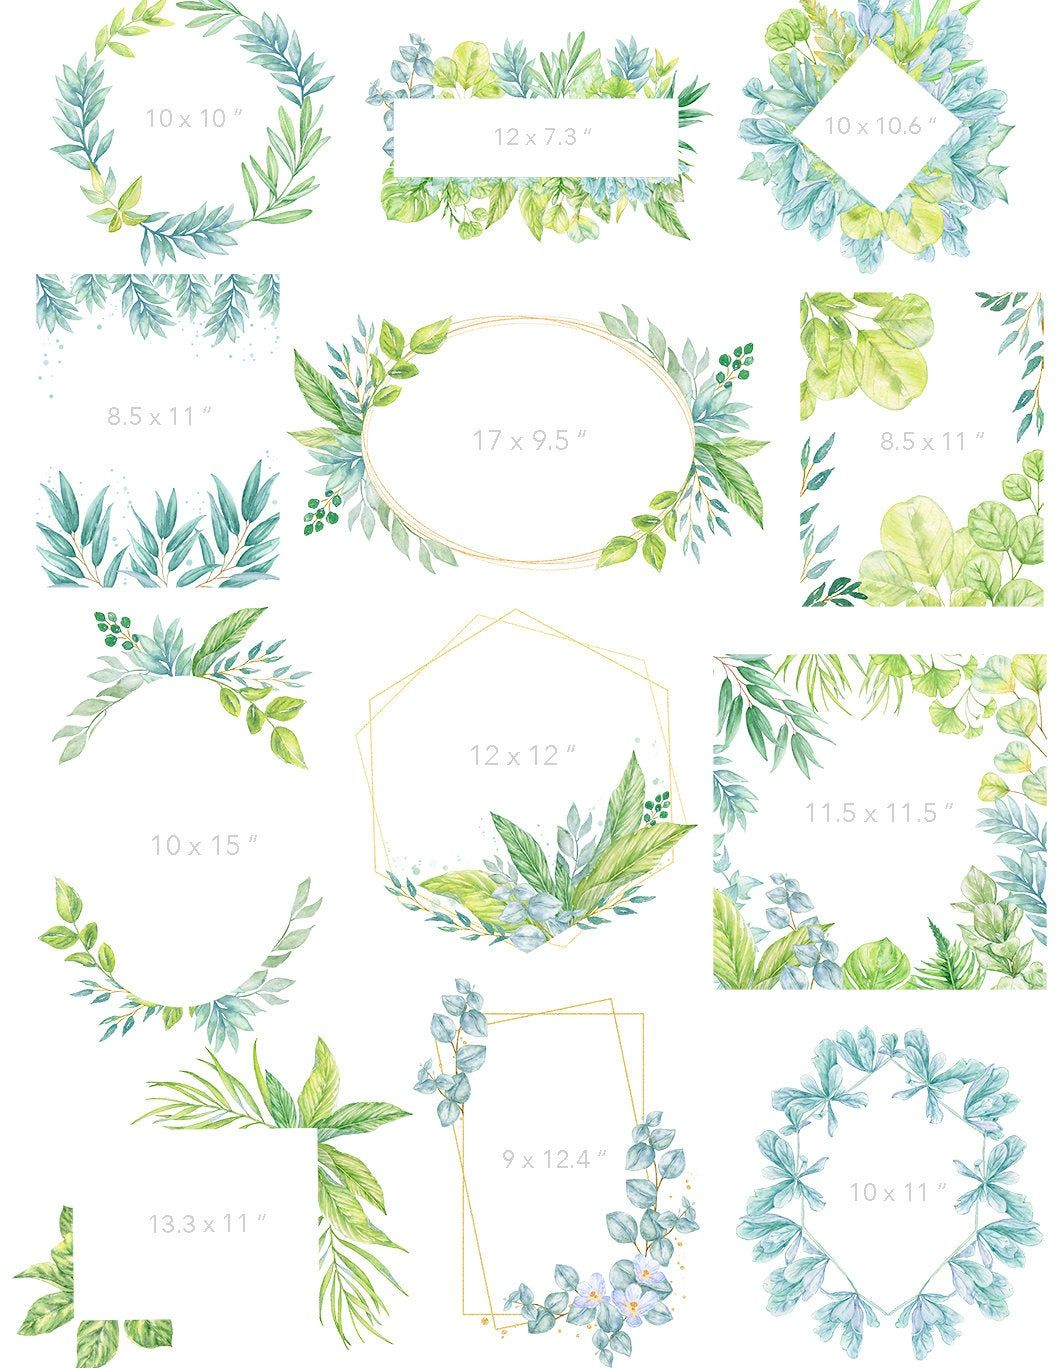 Watercolor Botanicals Clipart Collection Green Leaves Wreaths